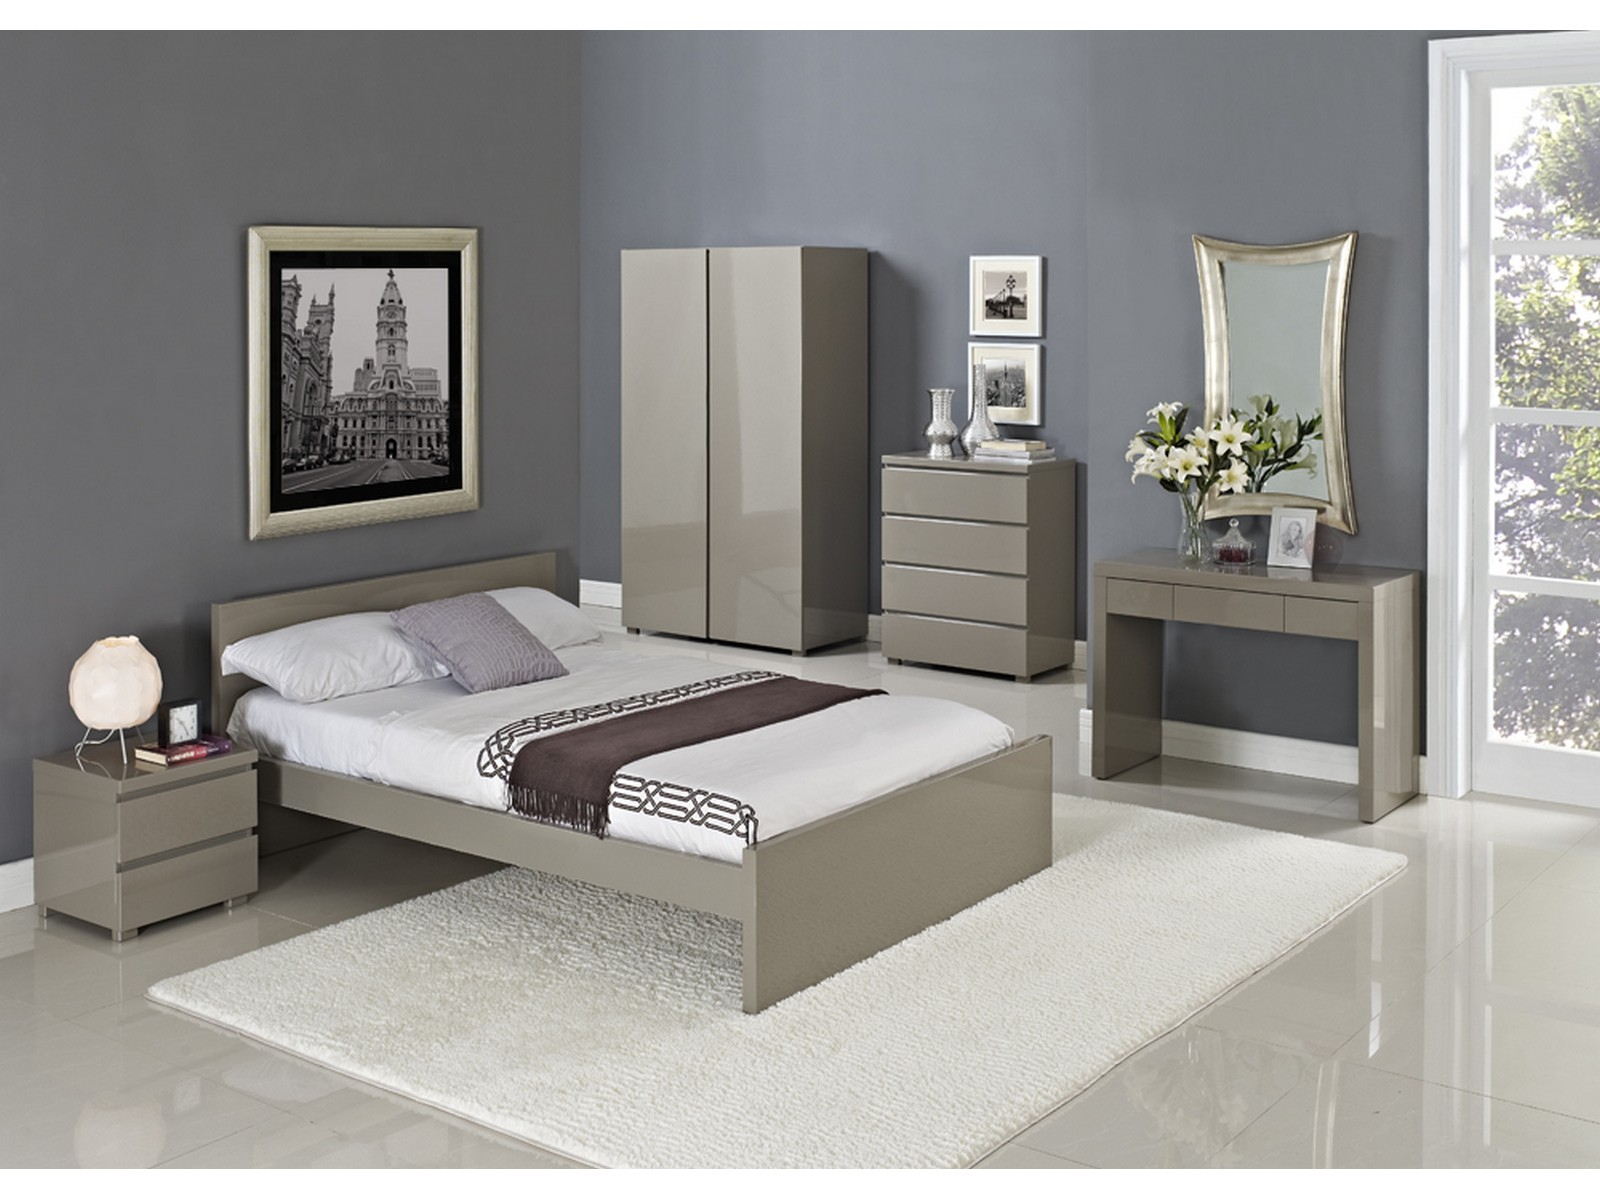 Details about Puro High Gloss Bedroom Range - Beds Wardrobe Chest, Stone  Cream, 8ft 8ft8 8ft